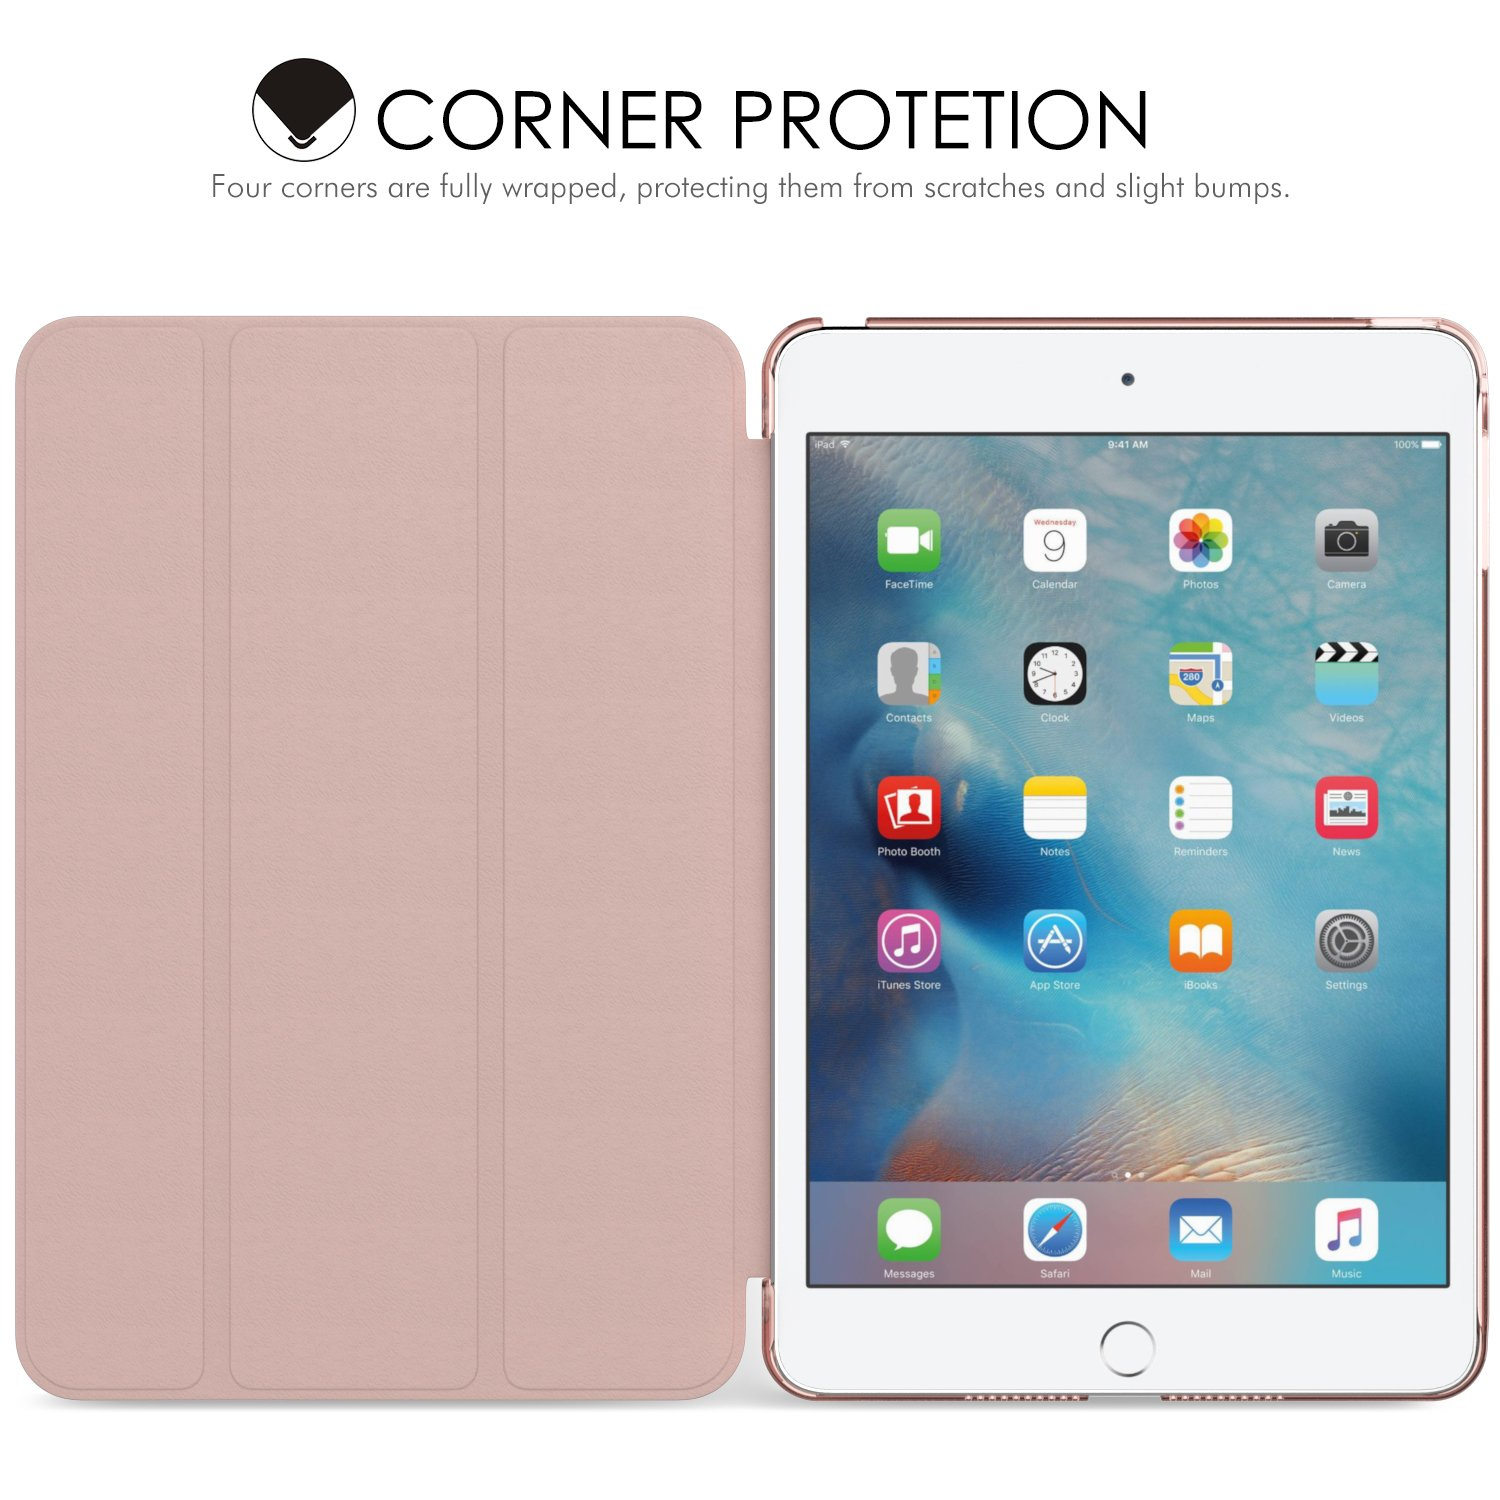 MoKo Case for iPad Mini 4 - Slim Lightweight Smart-shell Stand Cover with Translucent Frosted Back Protector for Apple iPad Mini 4 7.9 inch 2015 Release Tablet, Rose GOLD (with Auto Wake/ Sleep)